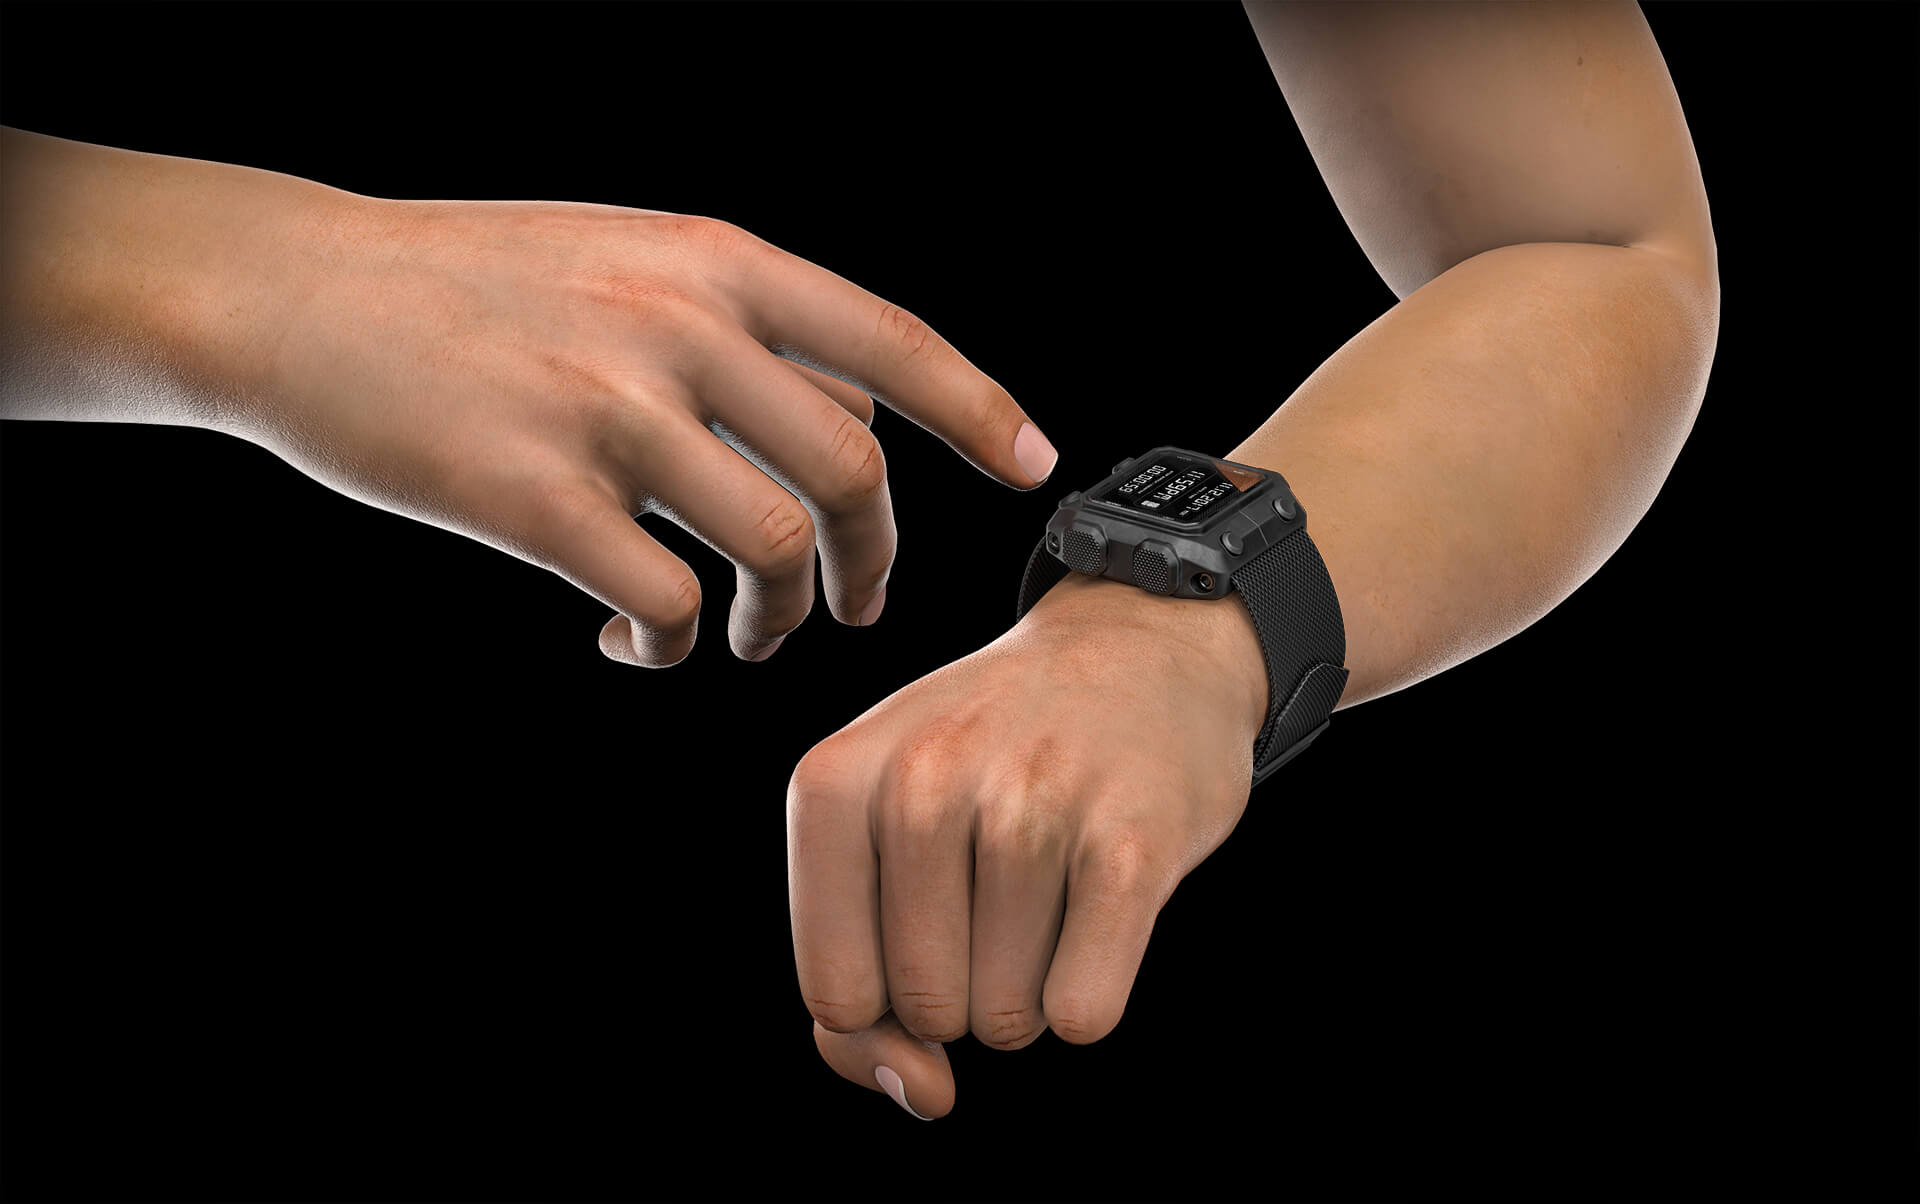 Watch-Render-Hand-c01-Clean